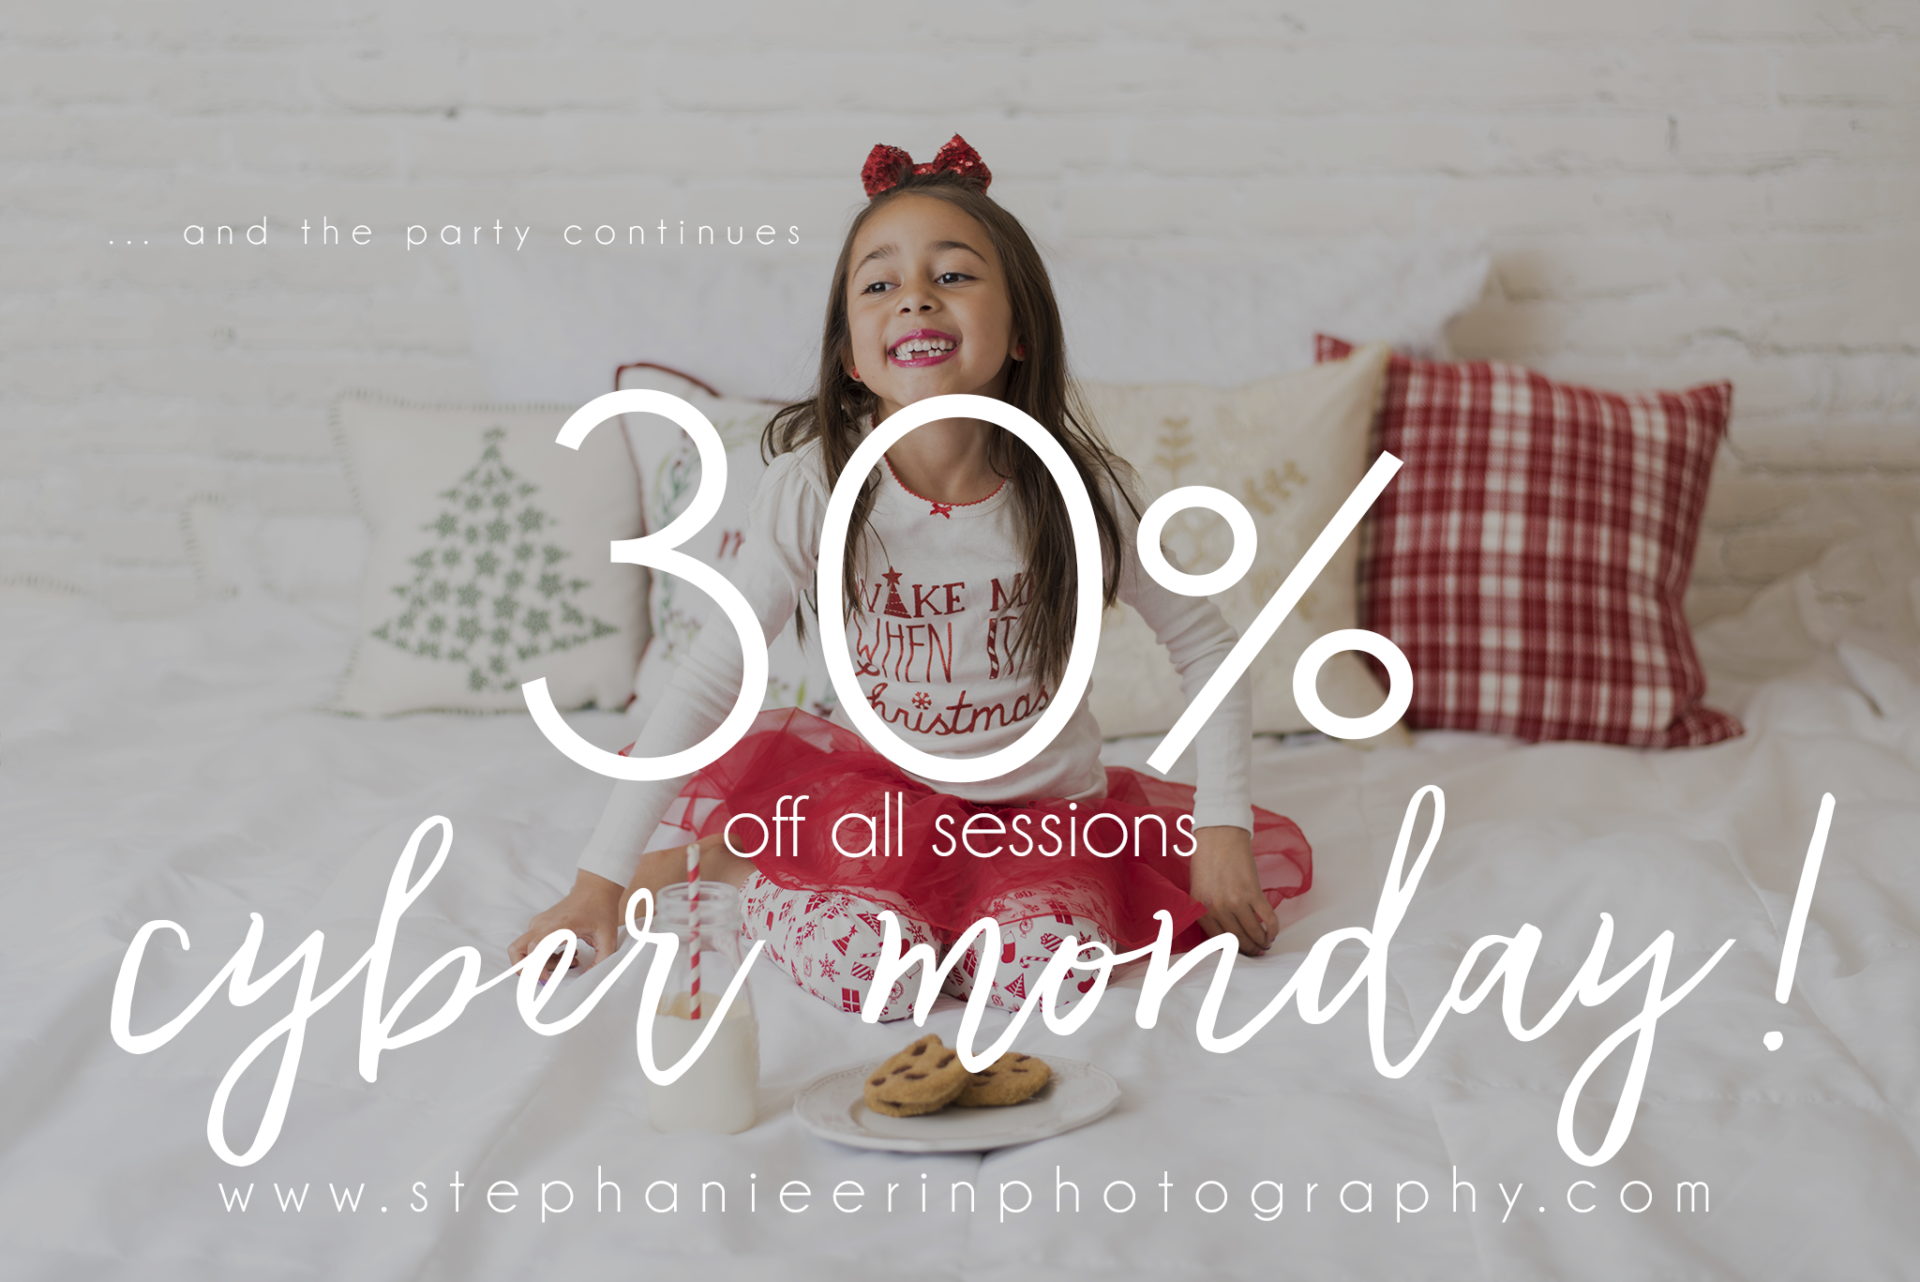 Here is your CYBER MONDAY discount code | STEPHANIE ERIN PHOTOGRAPHY | ST GEORGE UT NEWBORN PHOTOGRAPHER